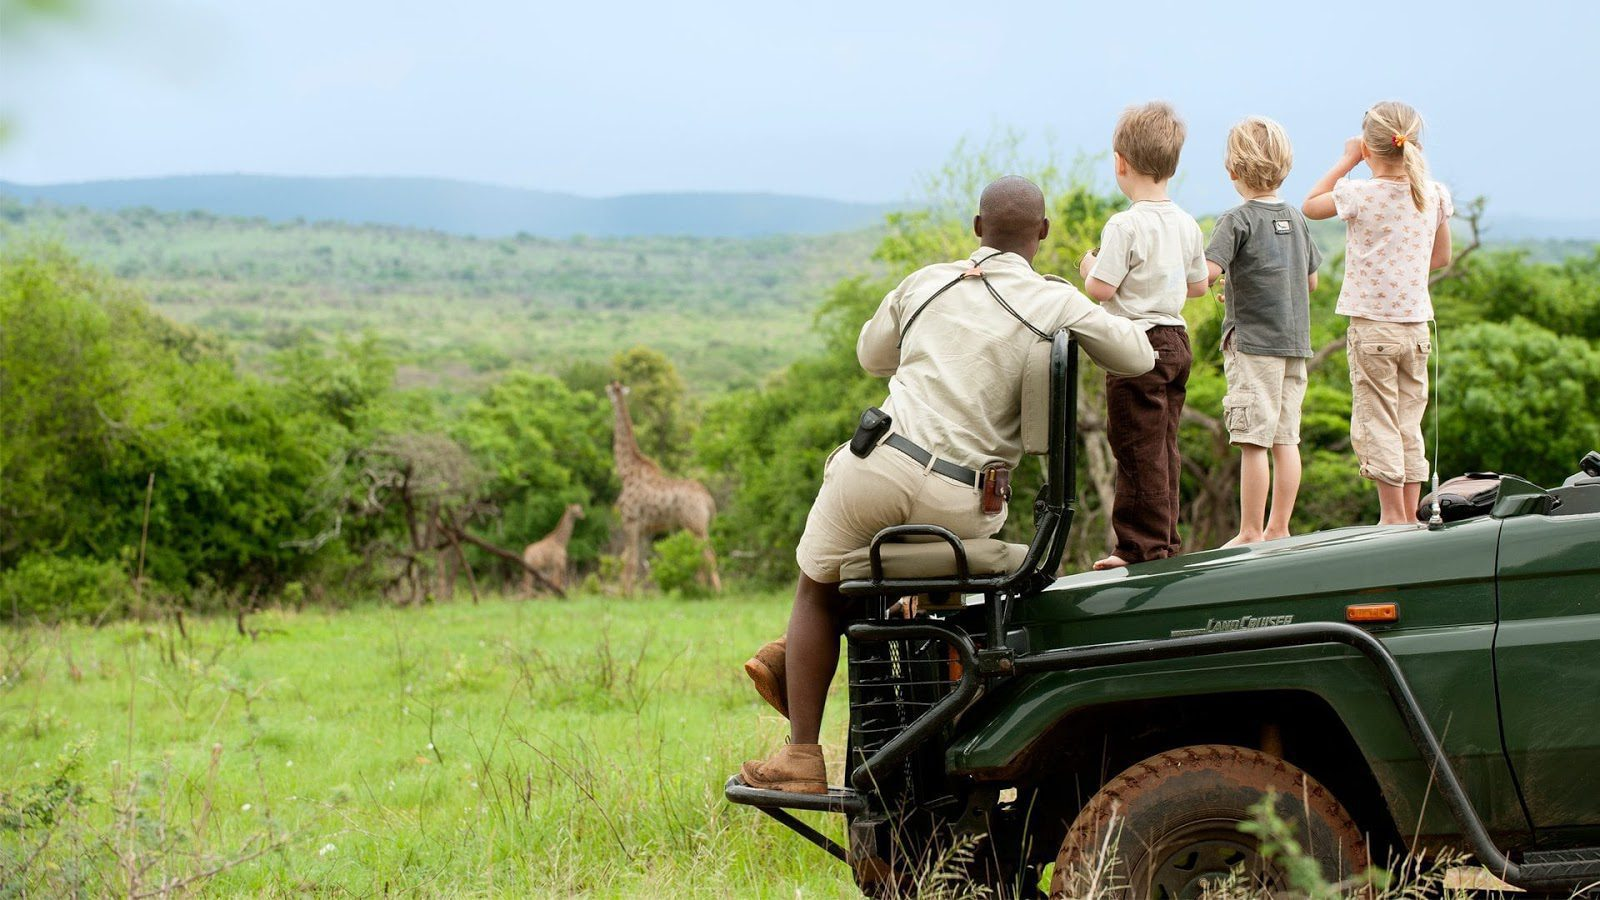 beside their South Africa safari guide, three small children stand atop the hood of a safari vehicle in a green field, watching giraffes